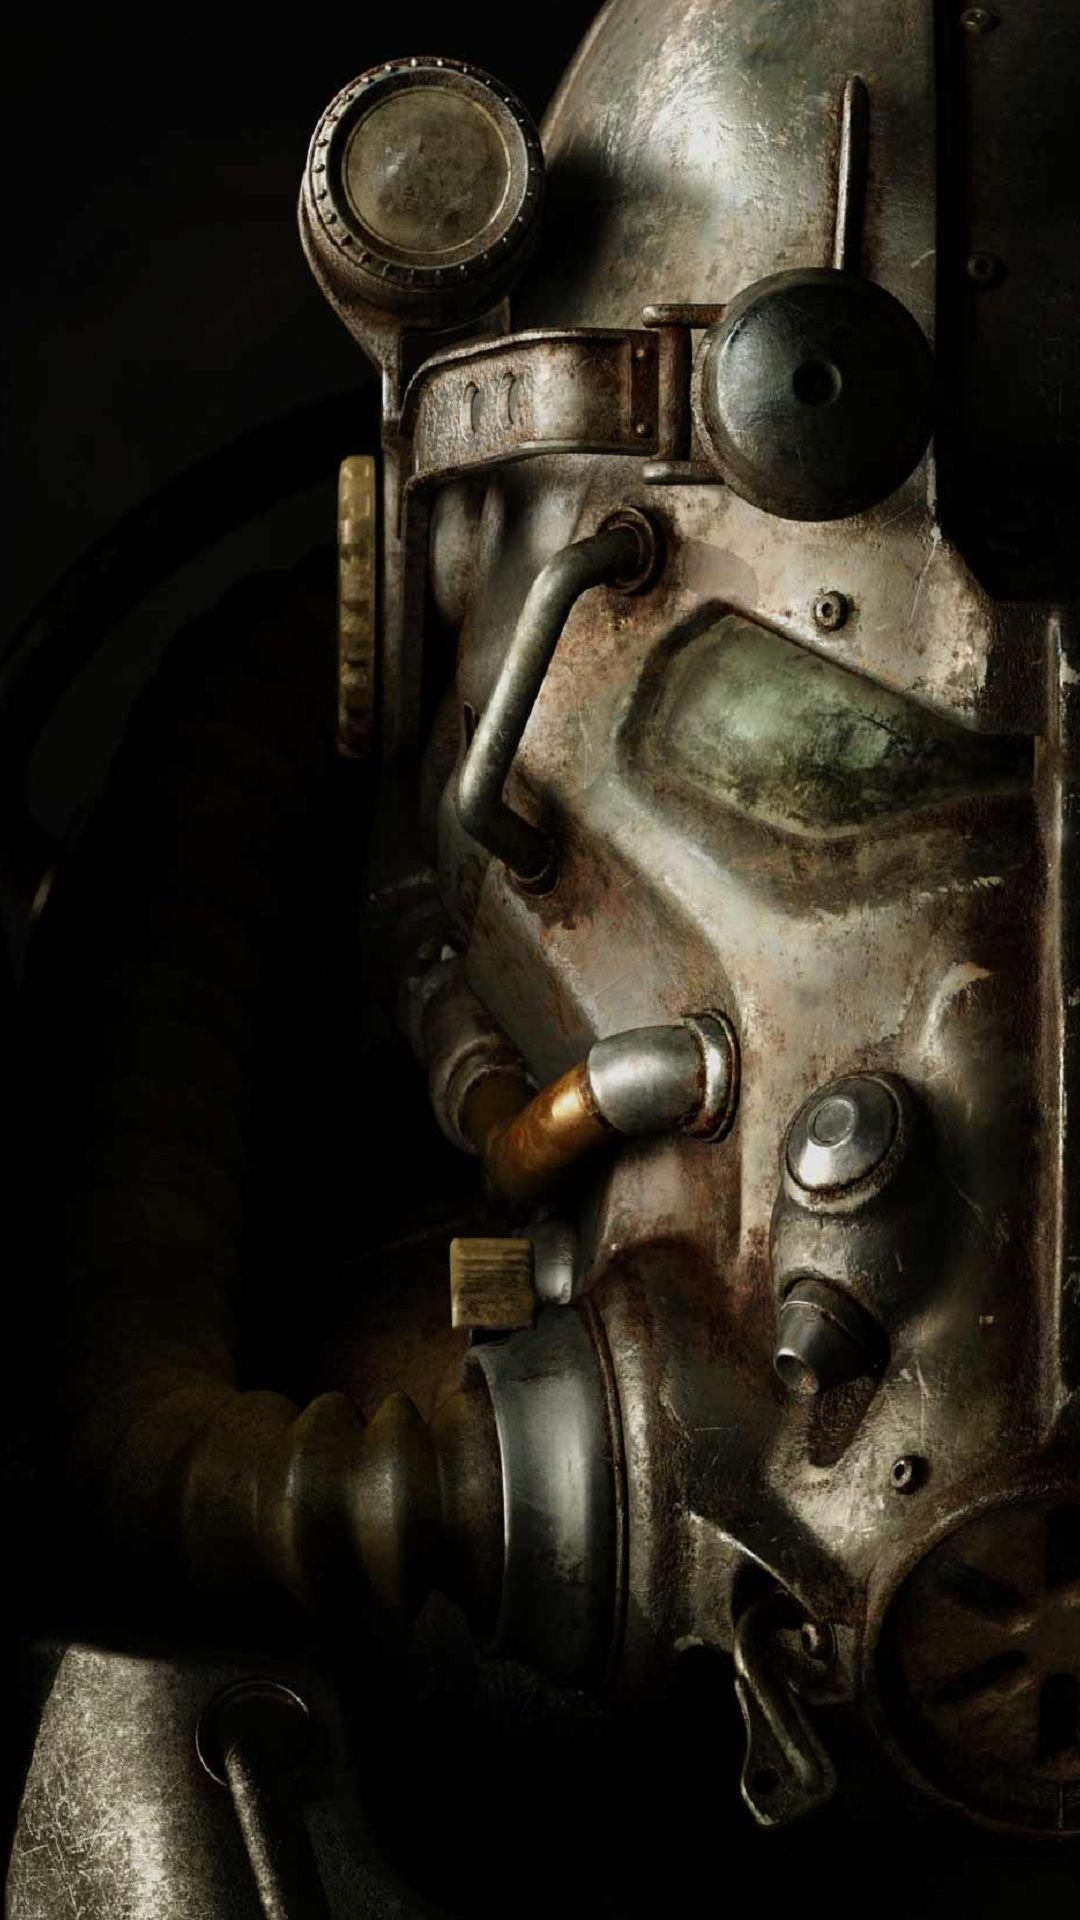 Fallout 4 1080x1920 Mobile Wallpapers Fallout Posters Fallout